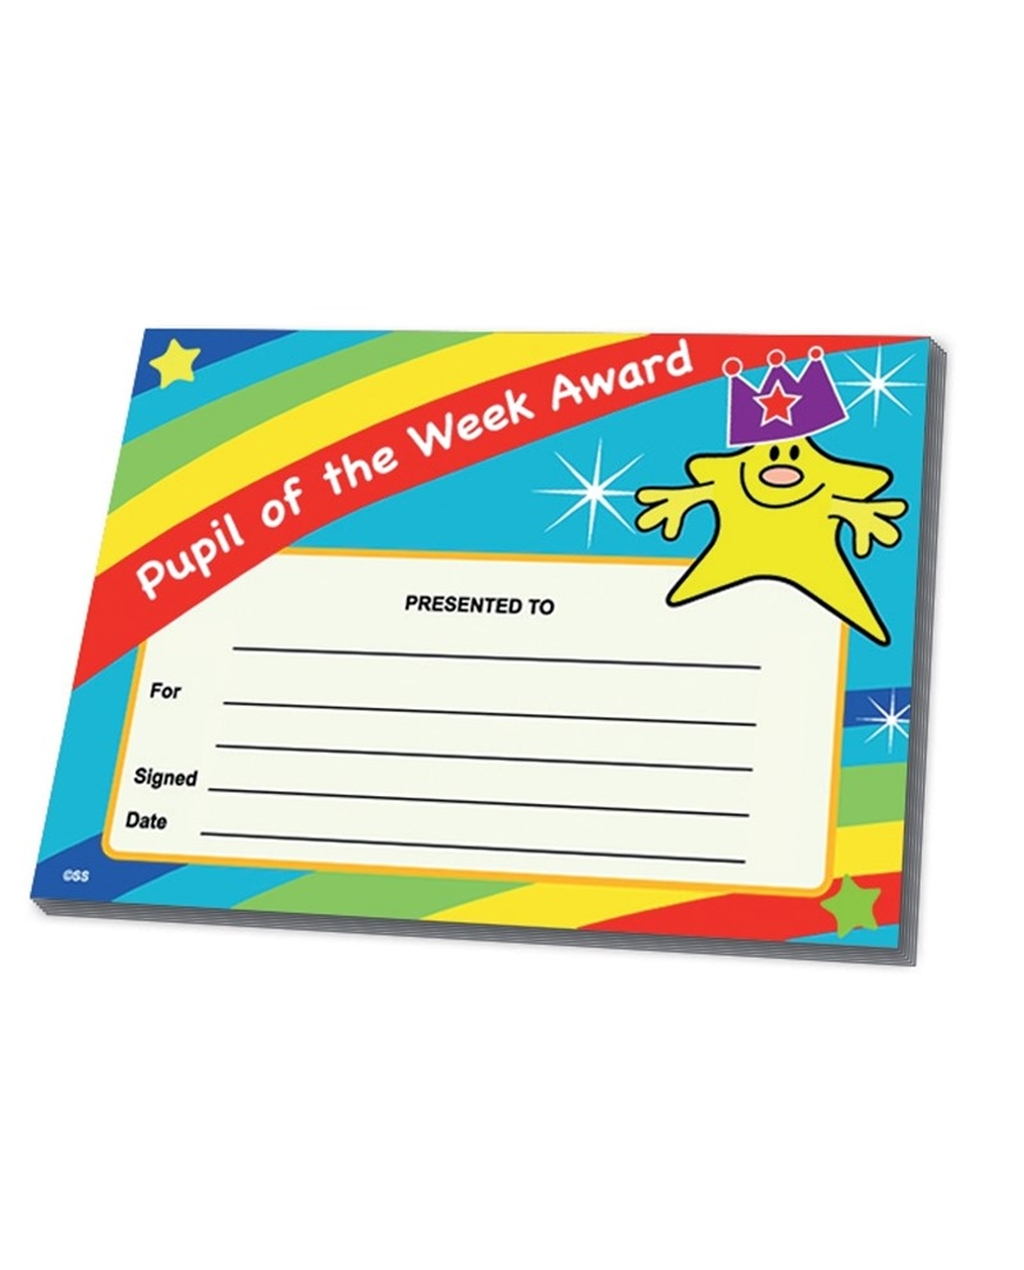 Certificates - Pupil of the Week